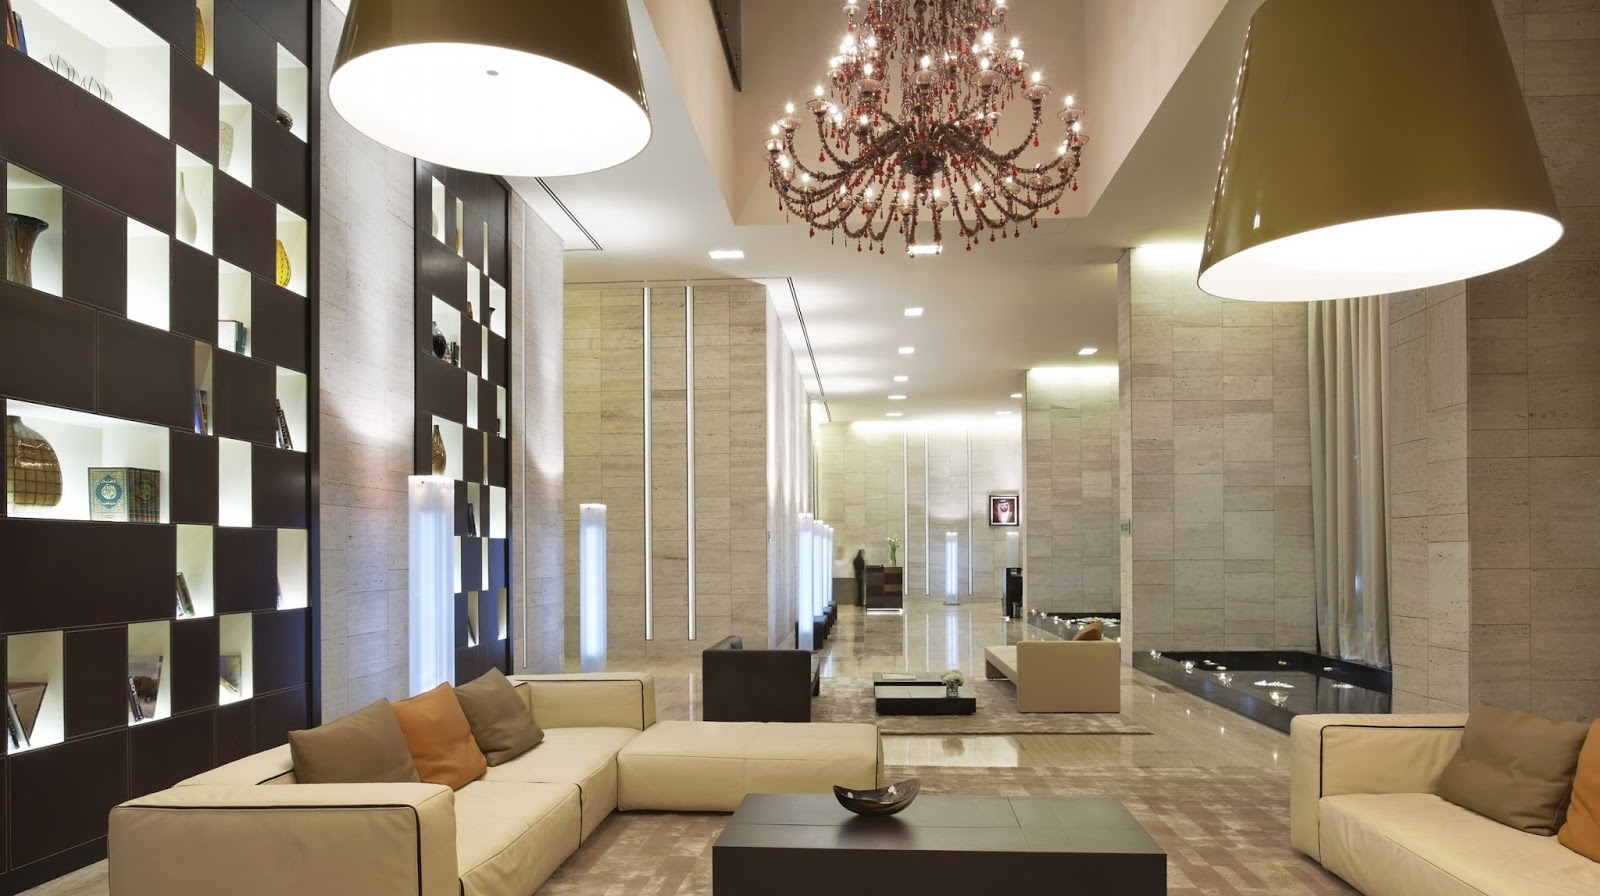 Best Interior Design Companies And Interior Designers In Dubai: creative interior ideas